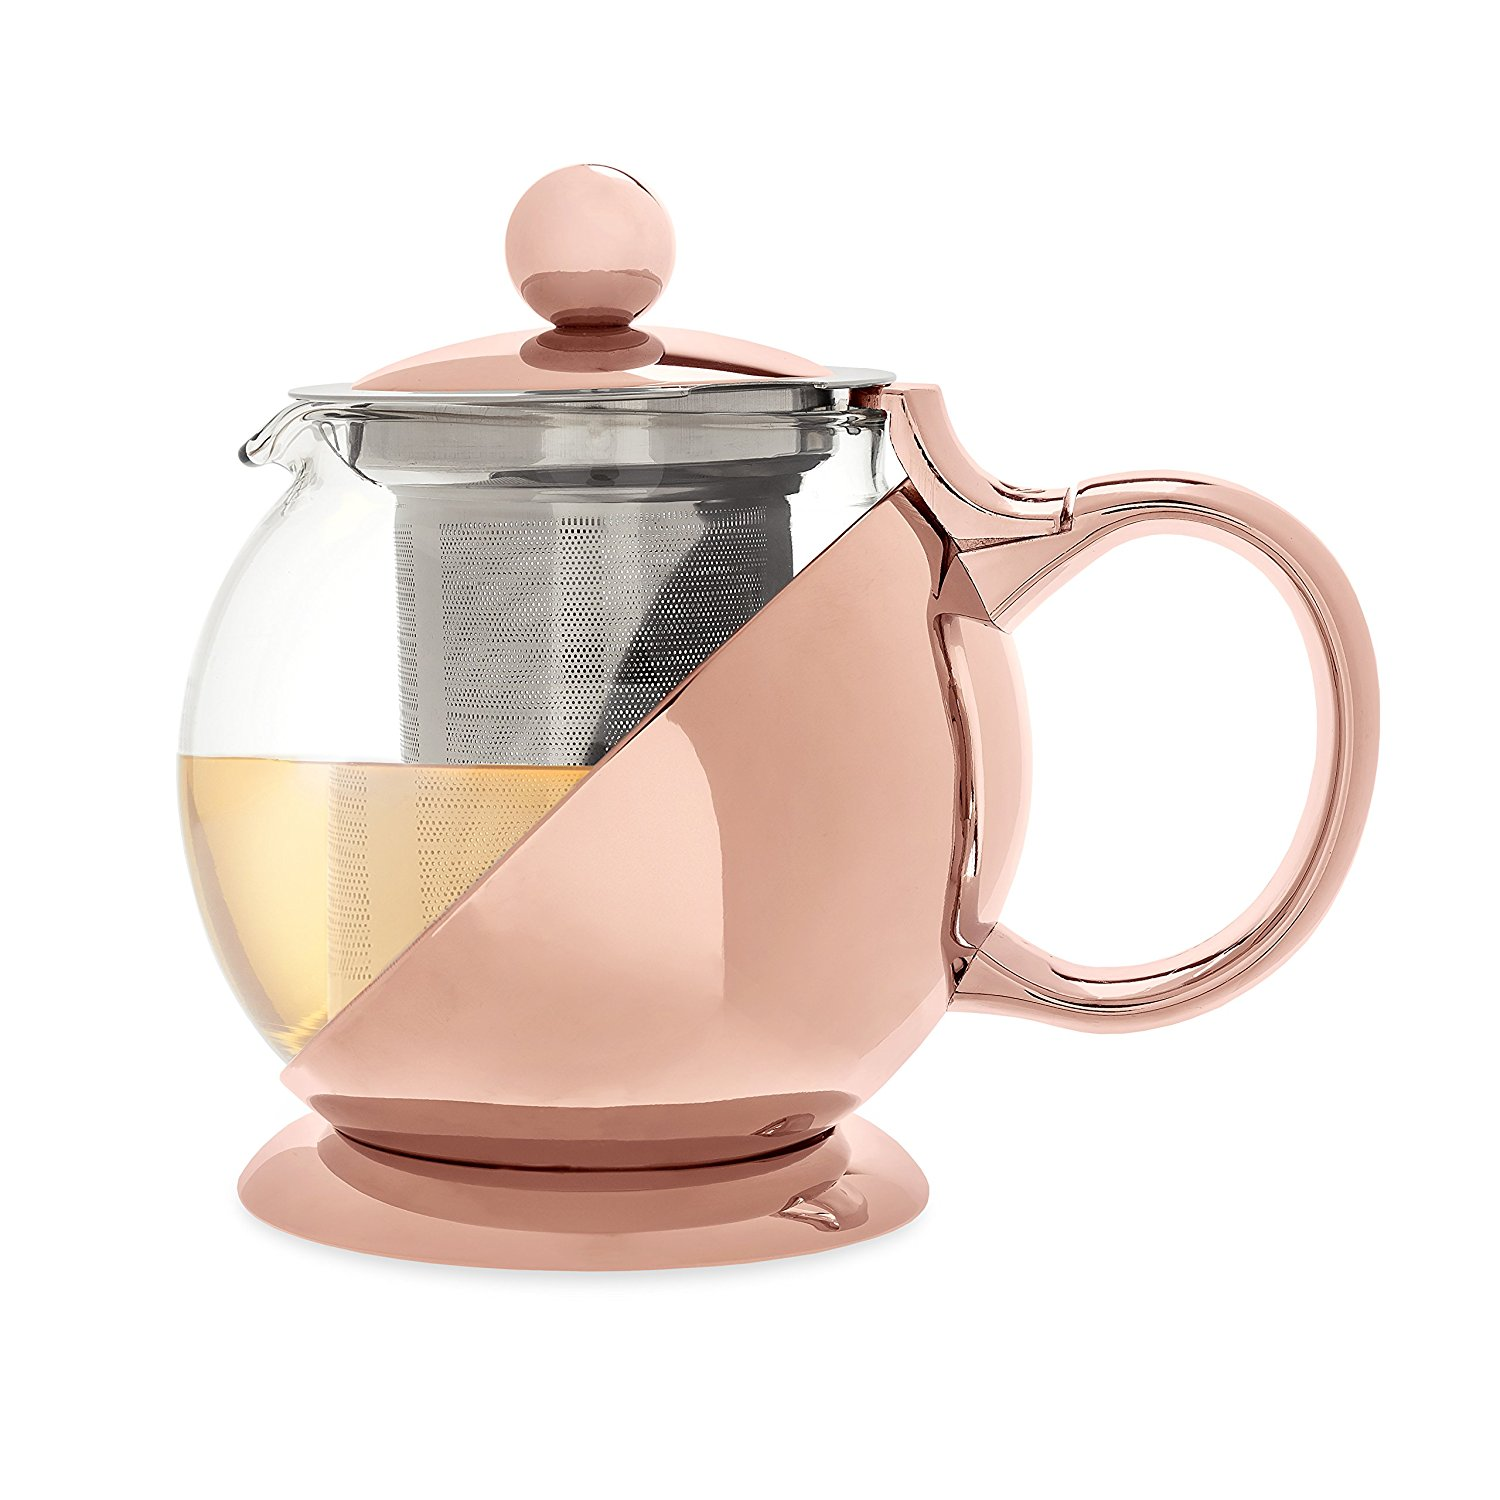 rose-gold-teapot-pinky-up-amazon-blog0417.jpg